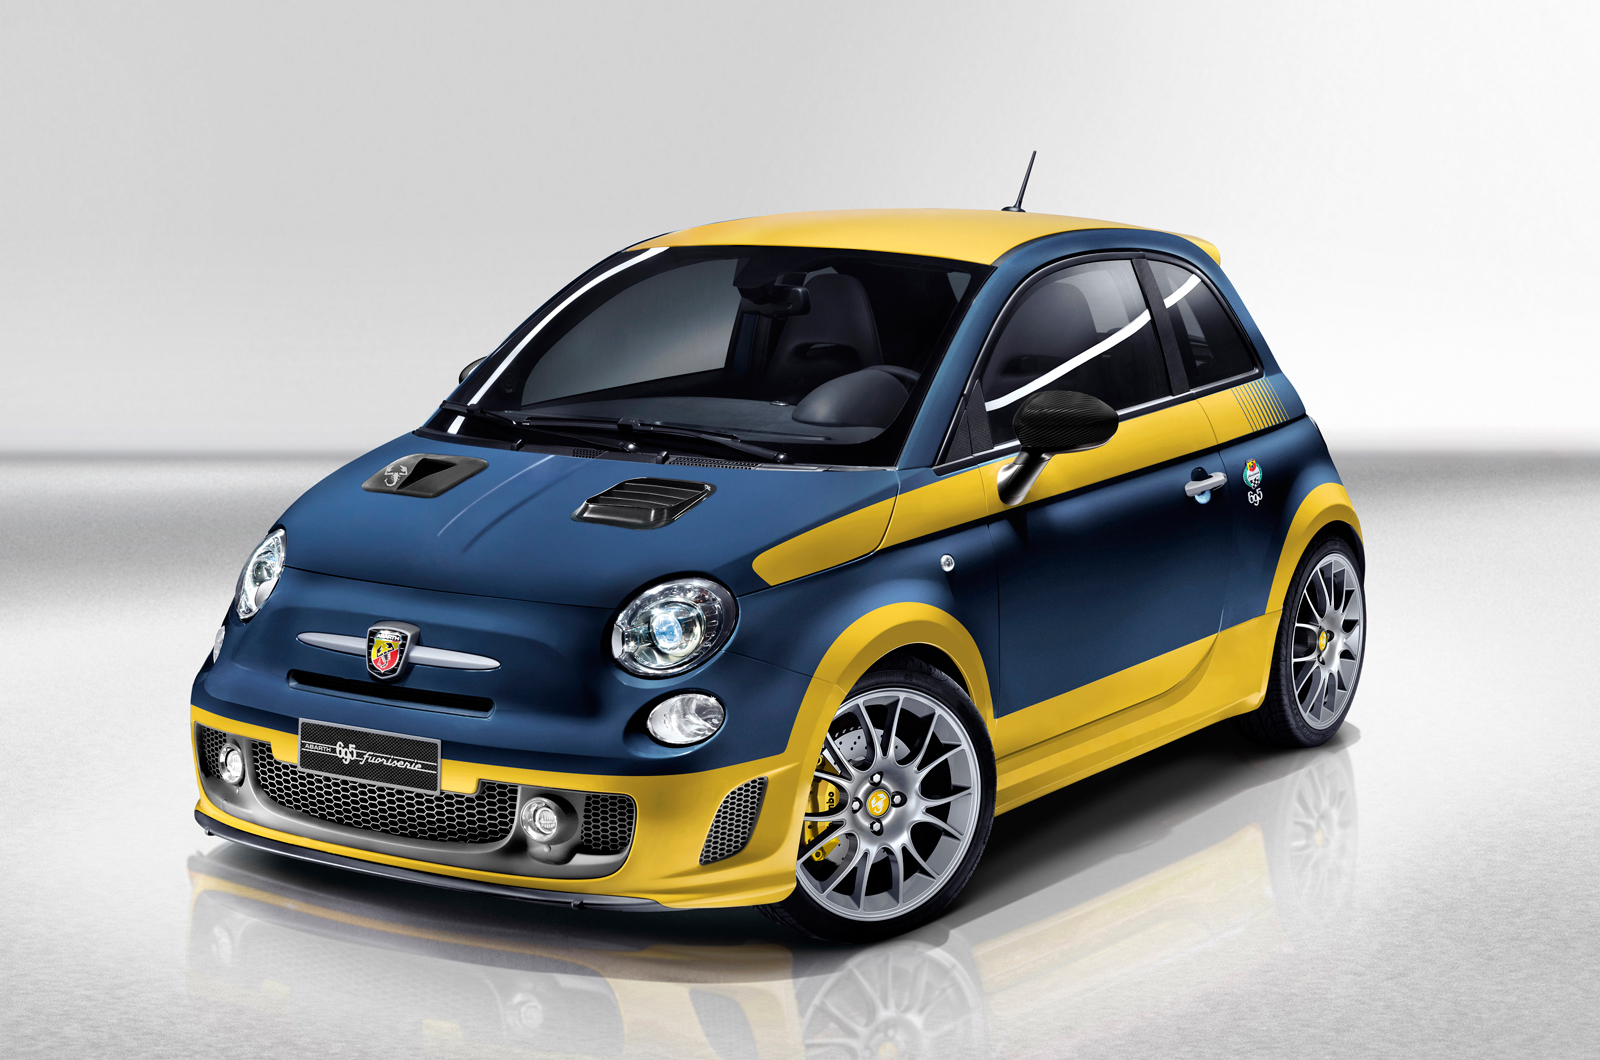 http://images.cdn.autocar.co.uk/sites/autocar.co.uk/files/Fiat-Abarth695-FuoriSerie2.jpg